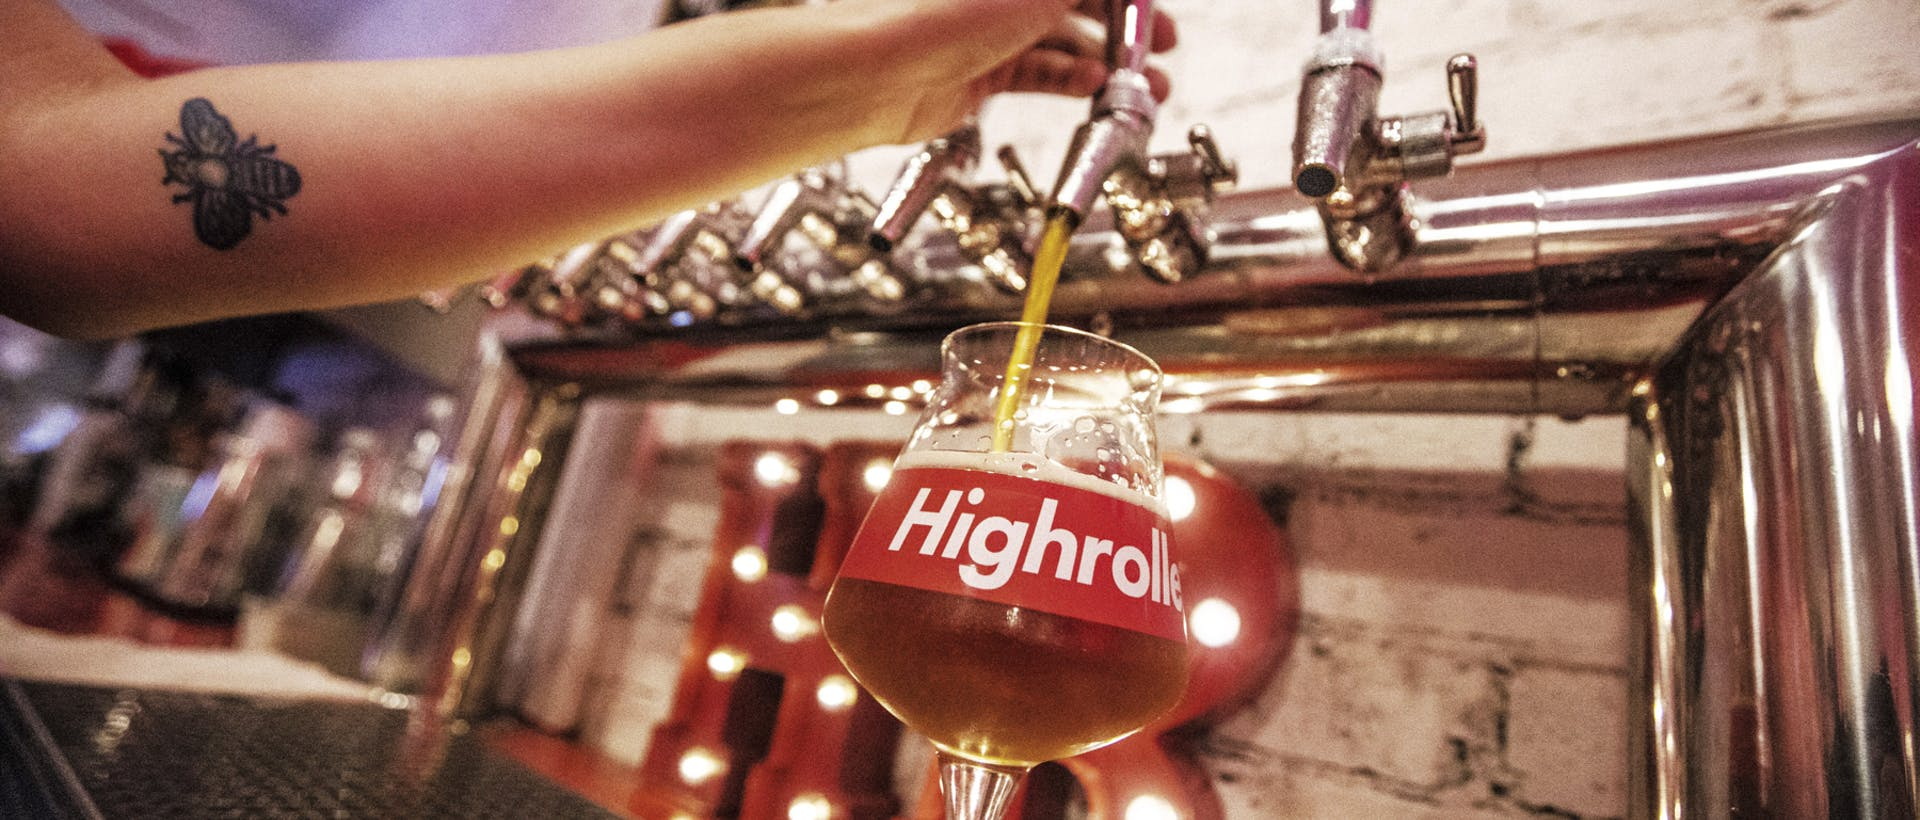 HighRoller-ALLAGASH (1 of 1)